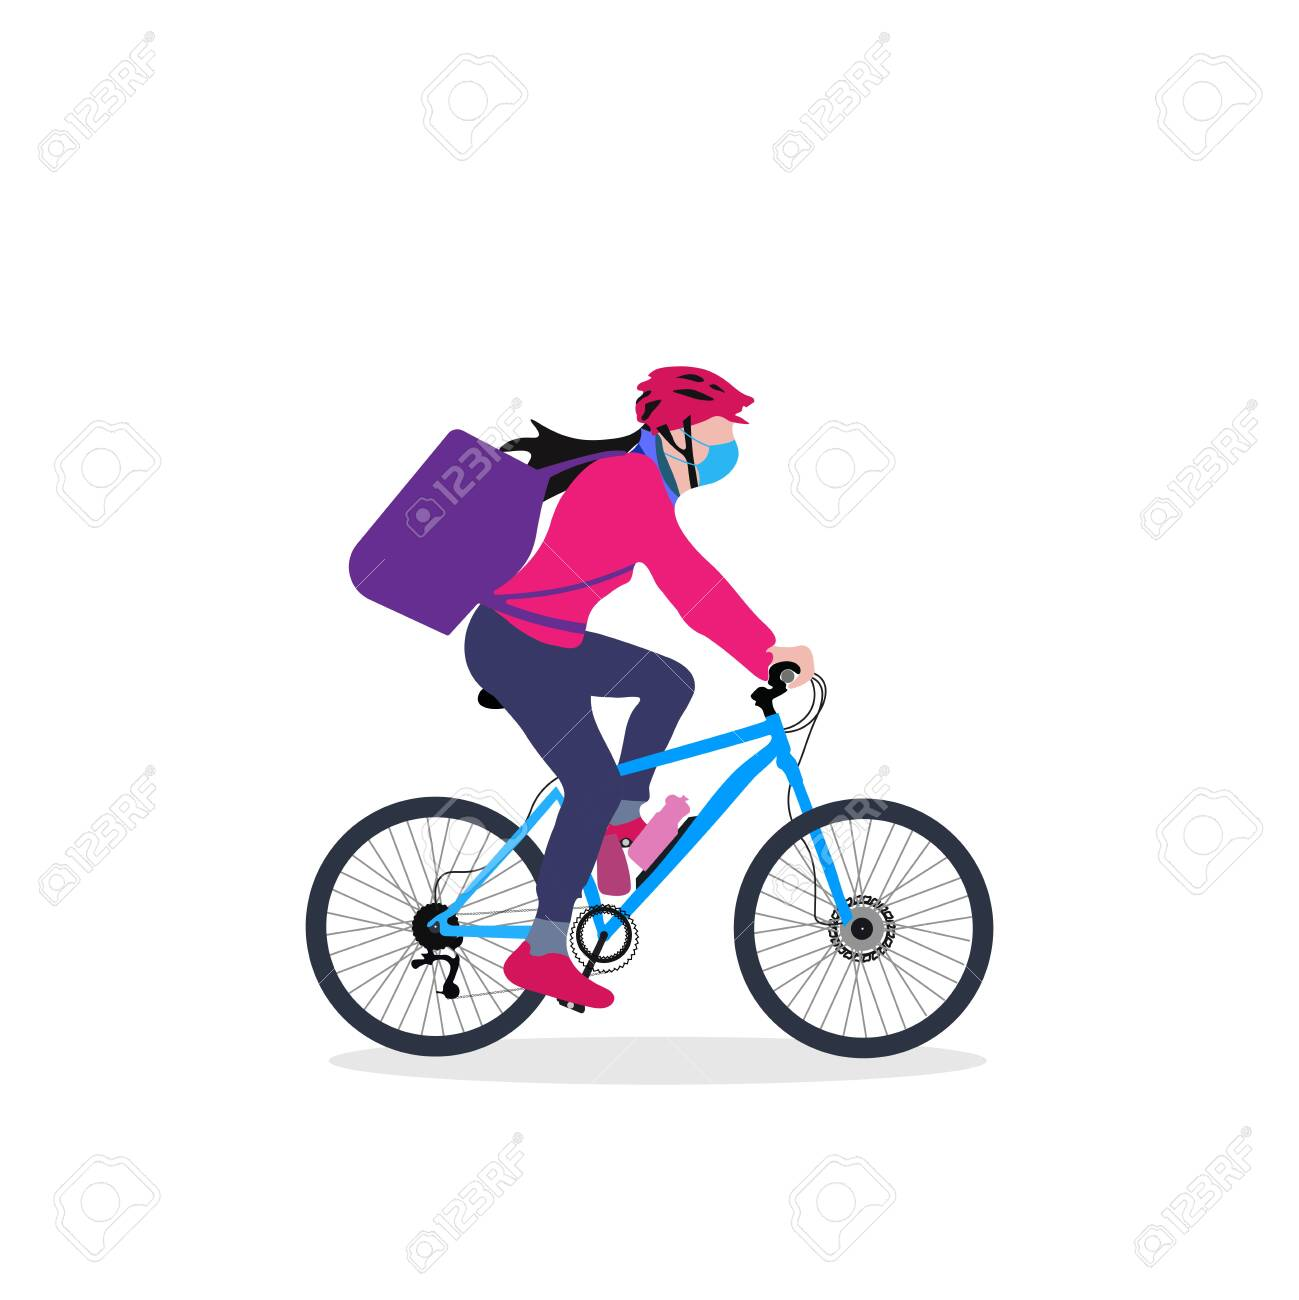 A delivery girl on cycle with backpack driving through an urban area vector illustration - 151006932